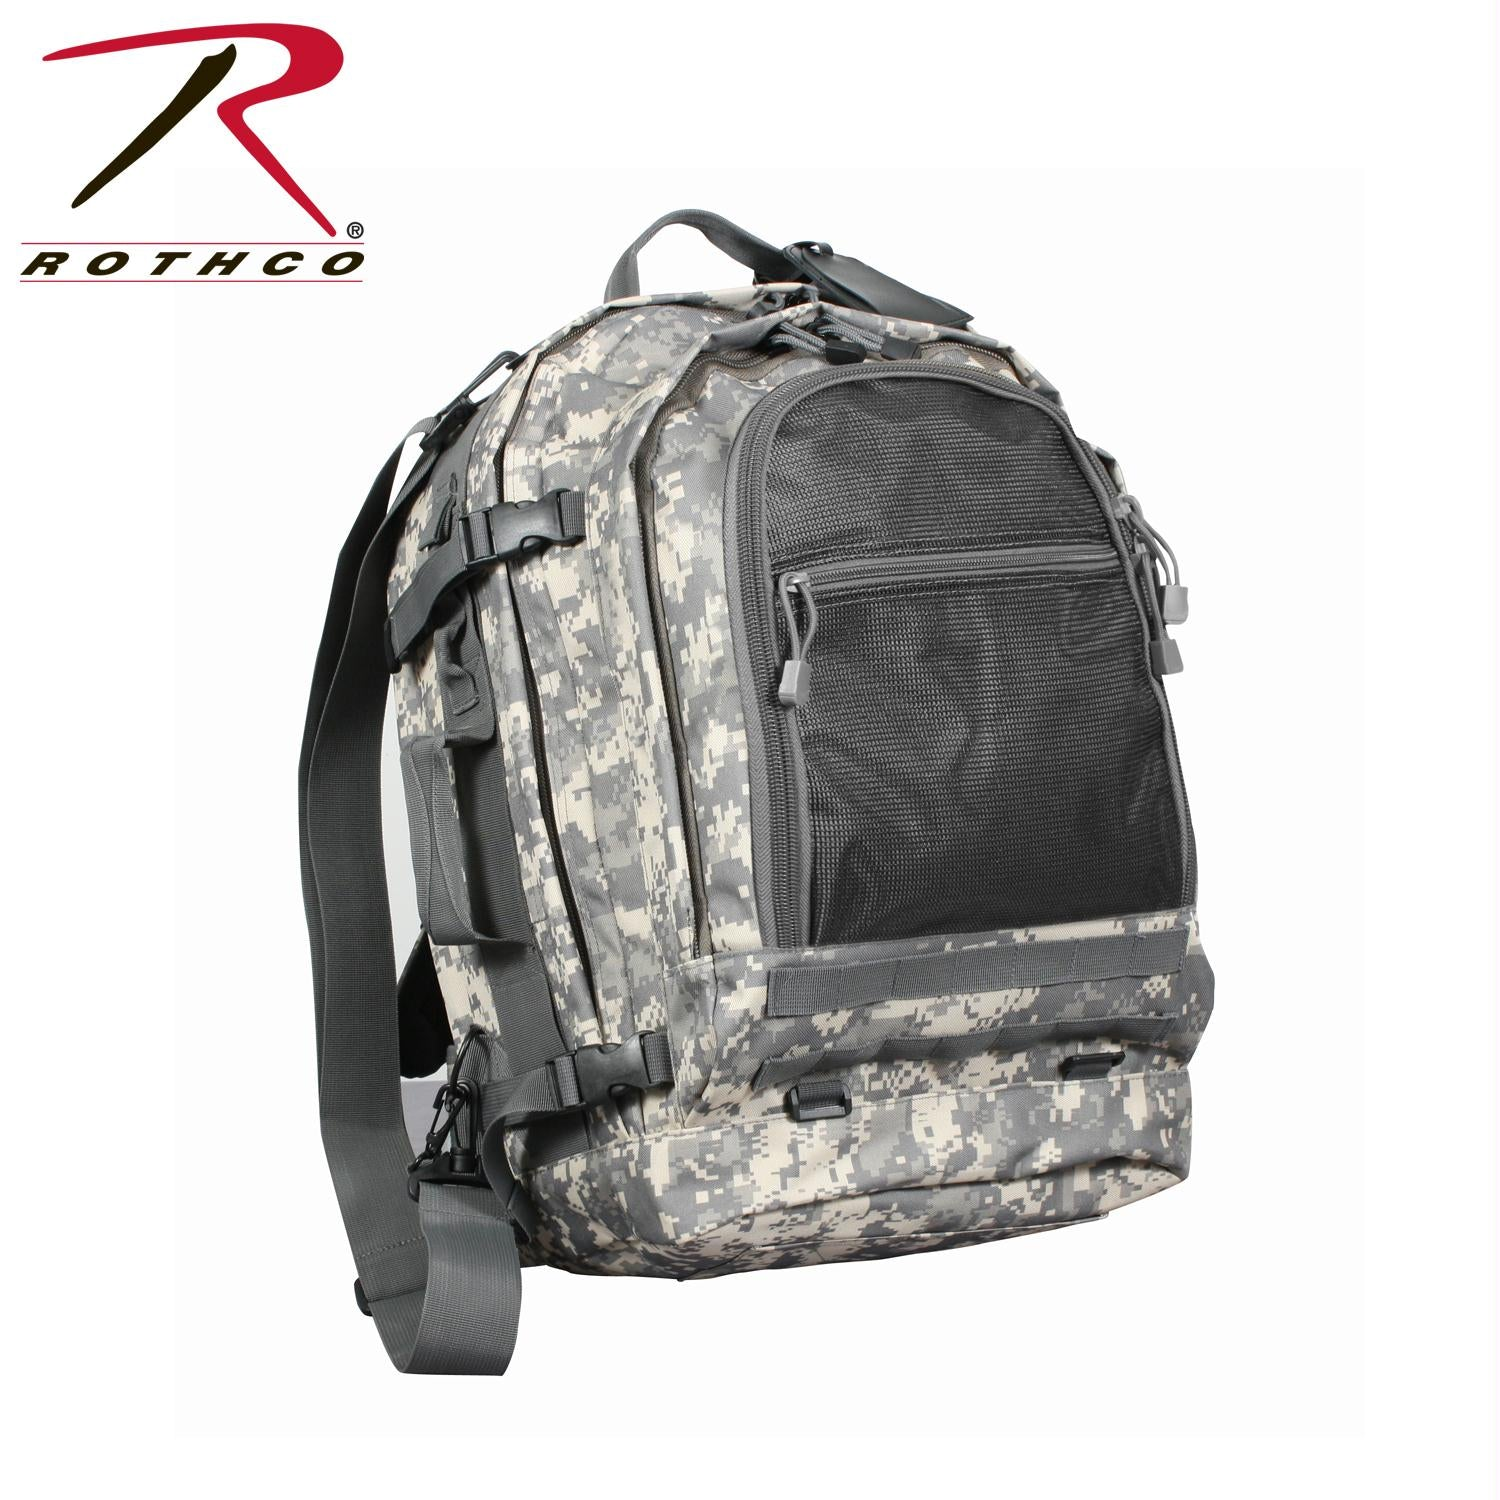 Rothco Move Out Tactical/Travel Backpack - ACU Digital Camo